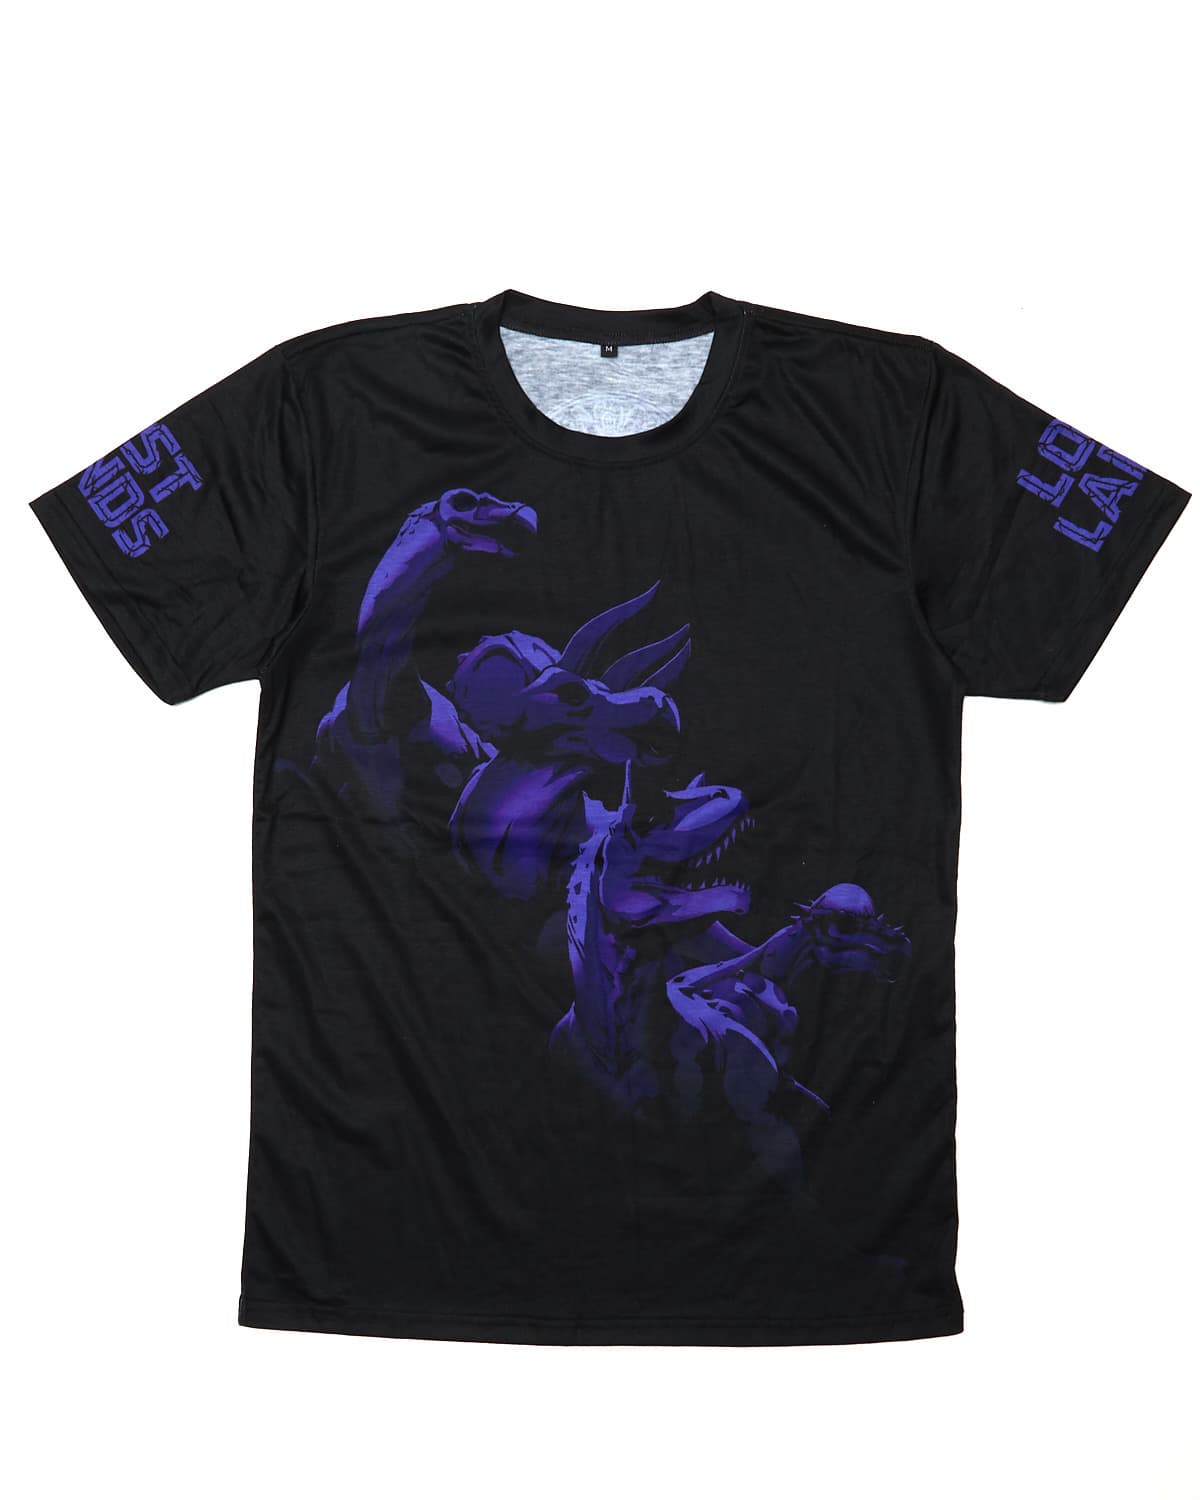 'Legends' Dye Sub Tee - Black/Purple